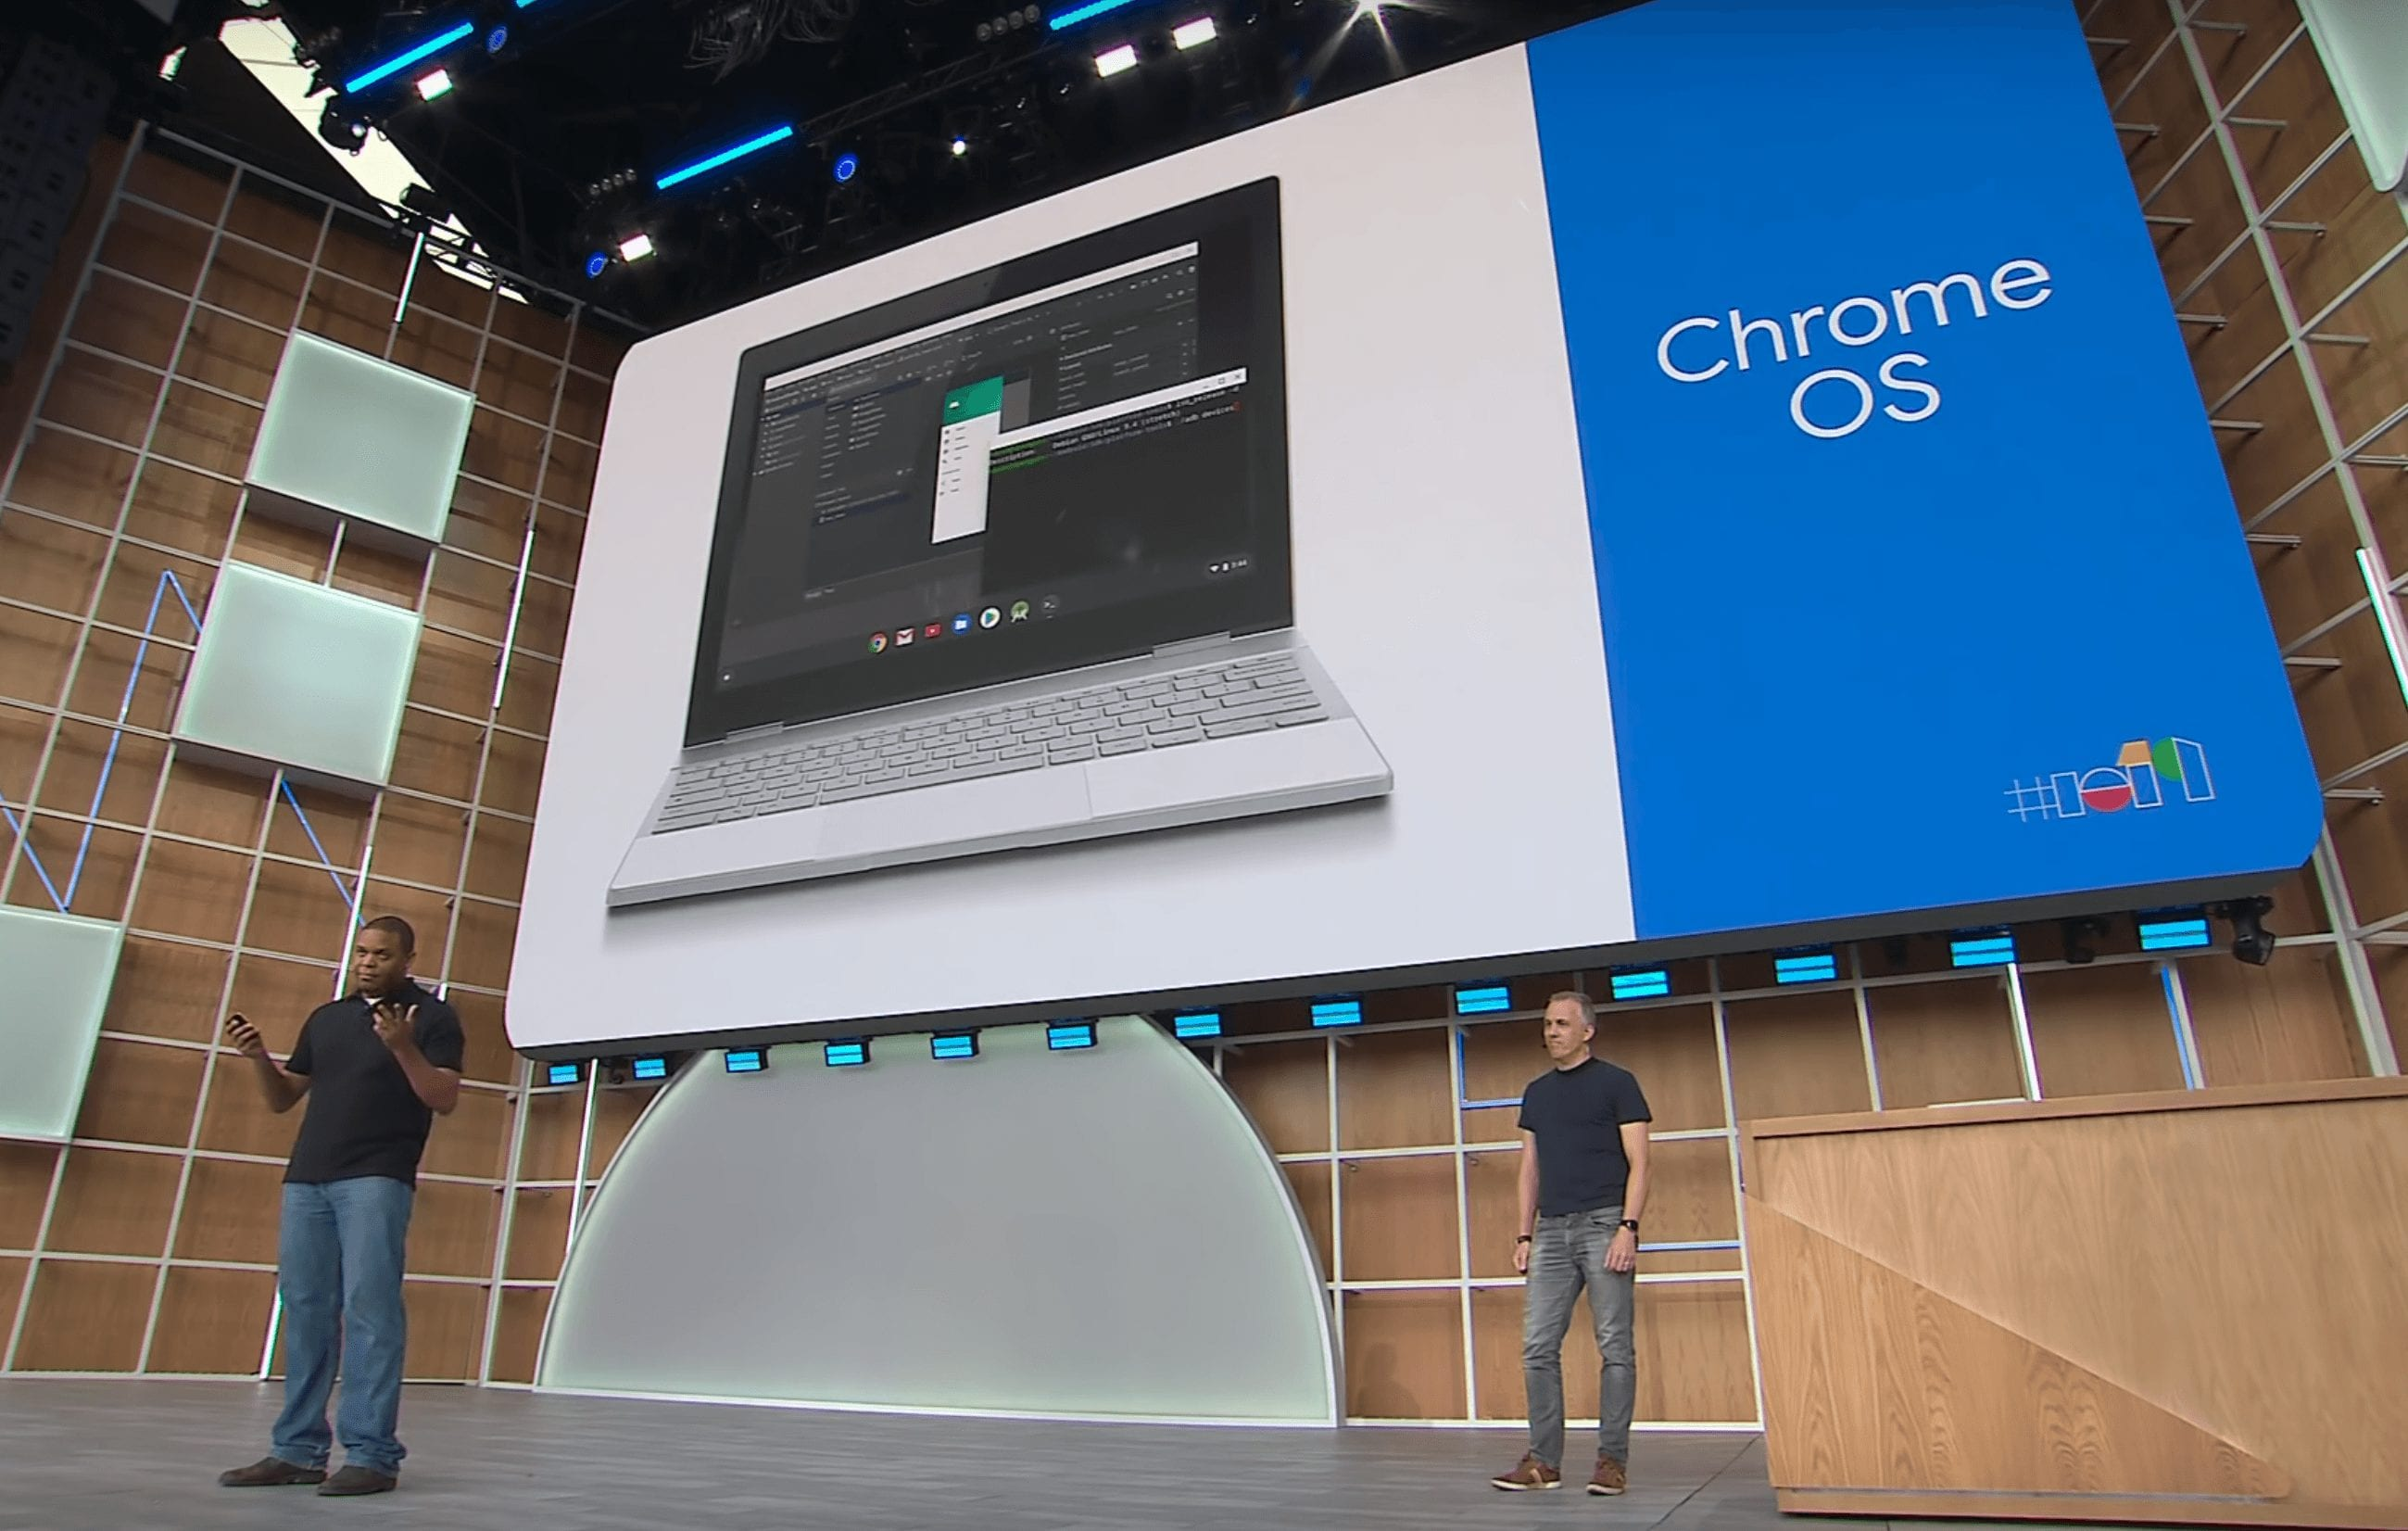 Want to code on a Chromebook? Check out Google's Chrome OS Developer Toolbox